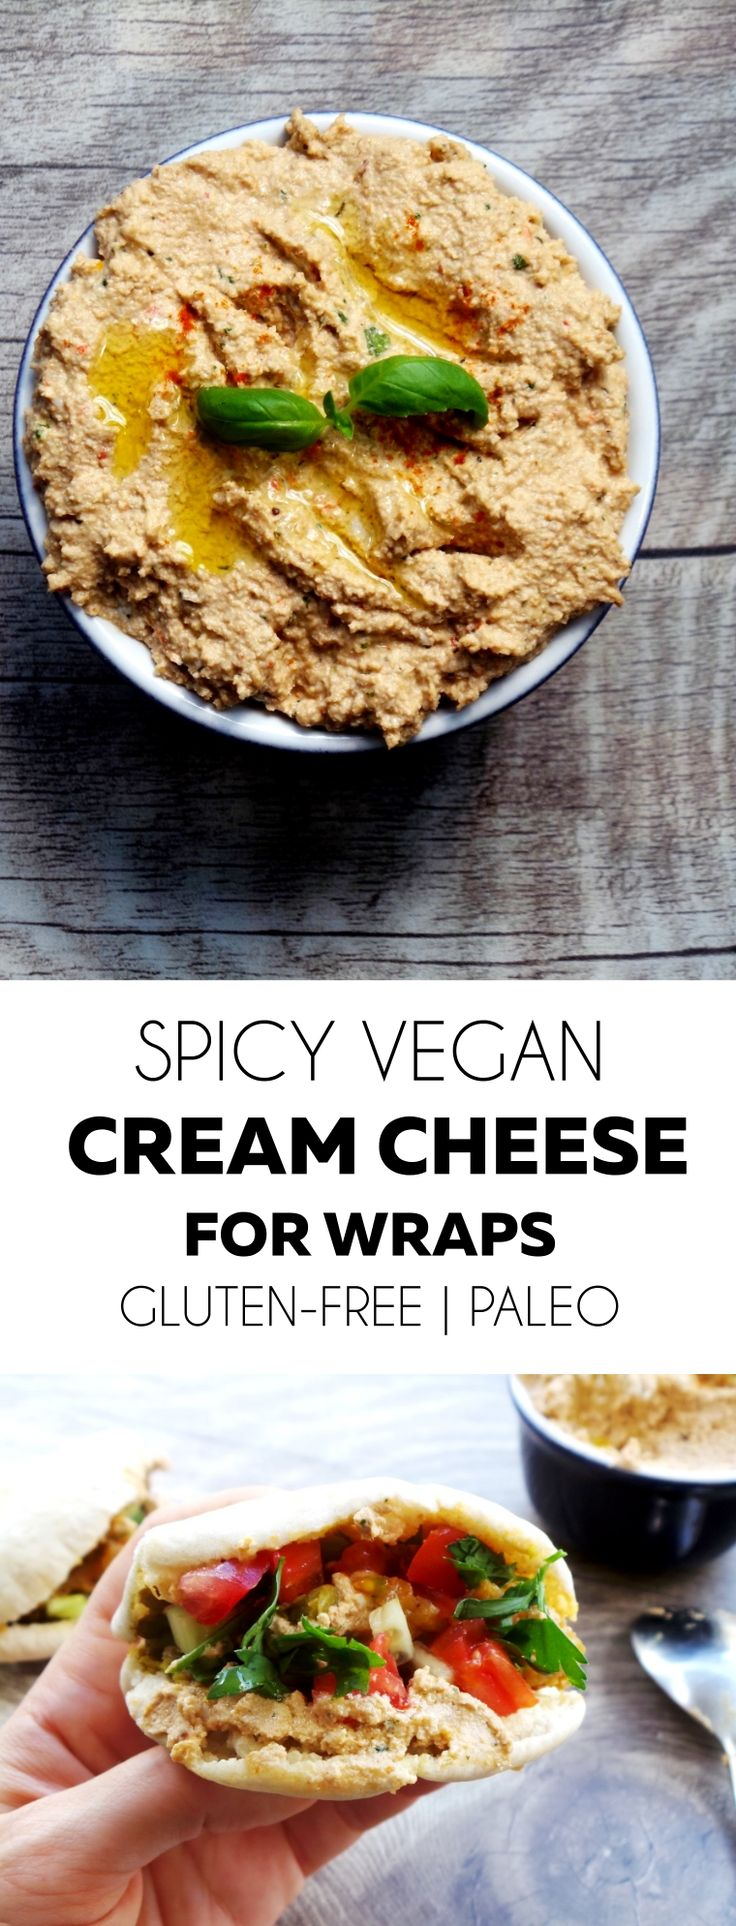 Vegan, paleo and gluten-free spicy cream cheese - perfect for all kinds of wraps or with falafels